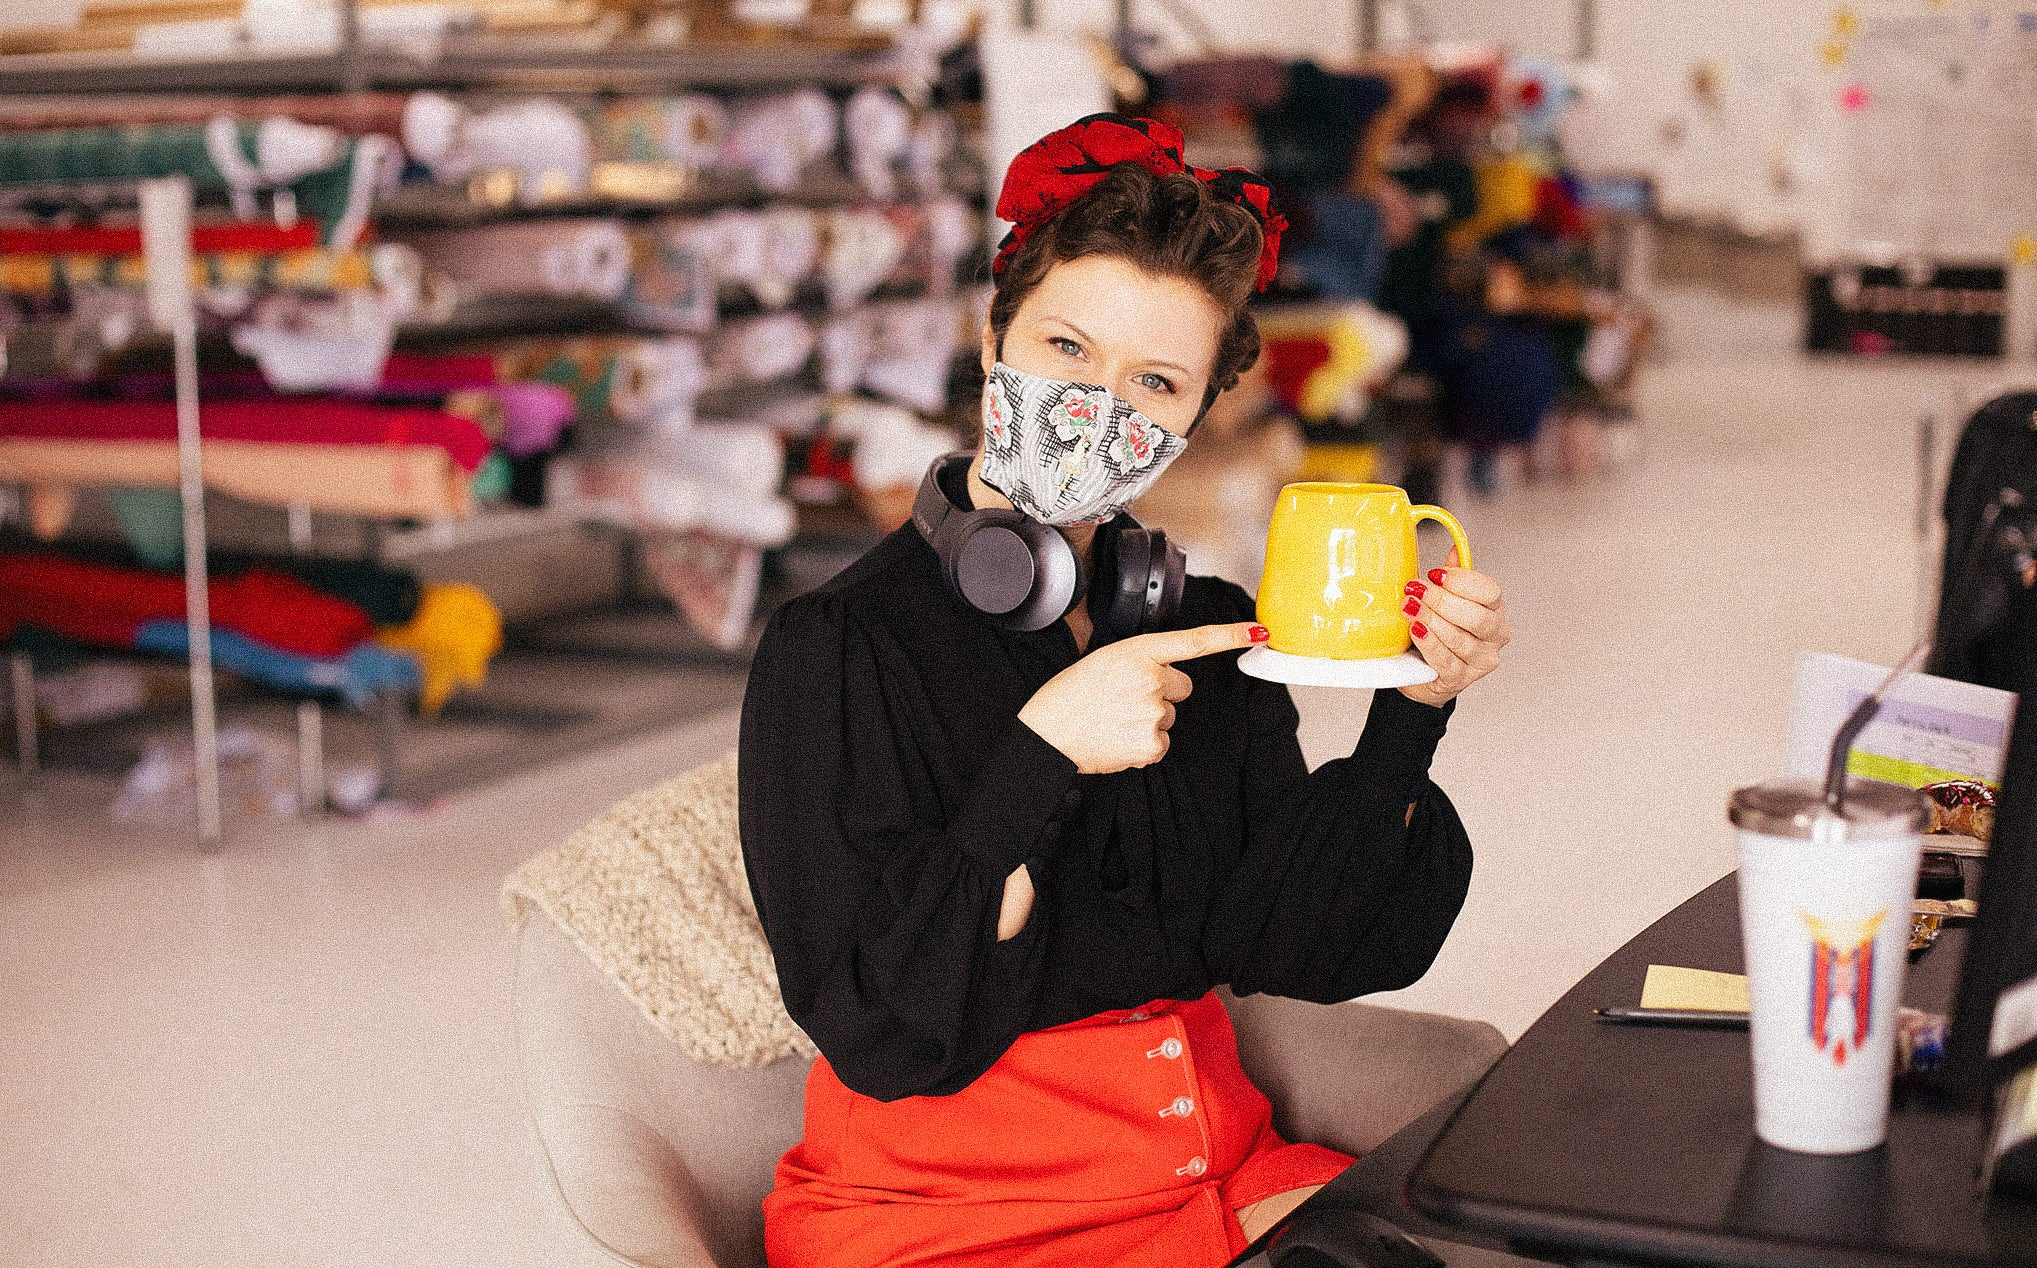 A woman wearing a face mask & a bandana on her head sits in a chair and poses pointing to a yellow mug.